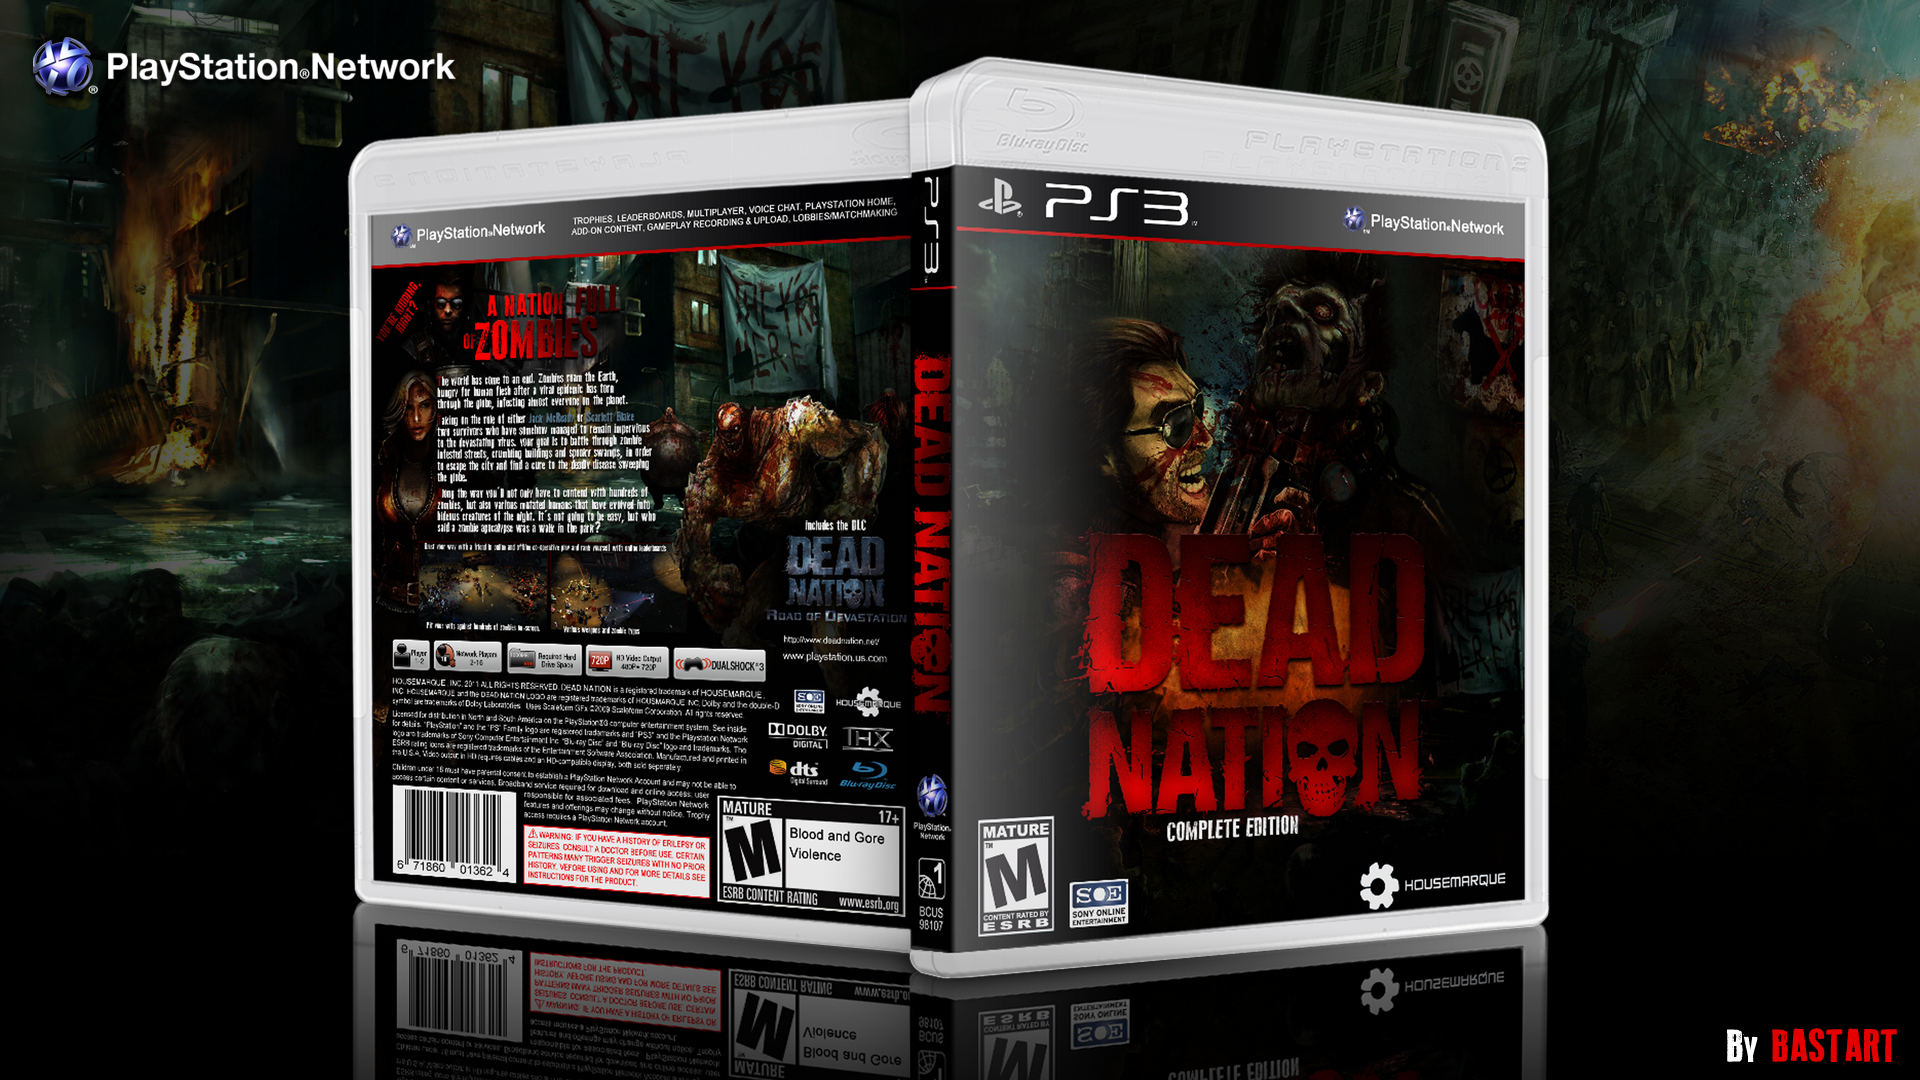 Dead Nation Playstation 3 Box Art Cover By Bastart